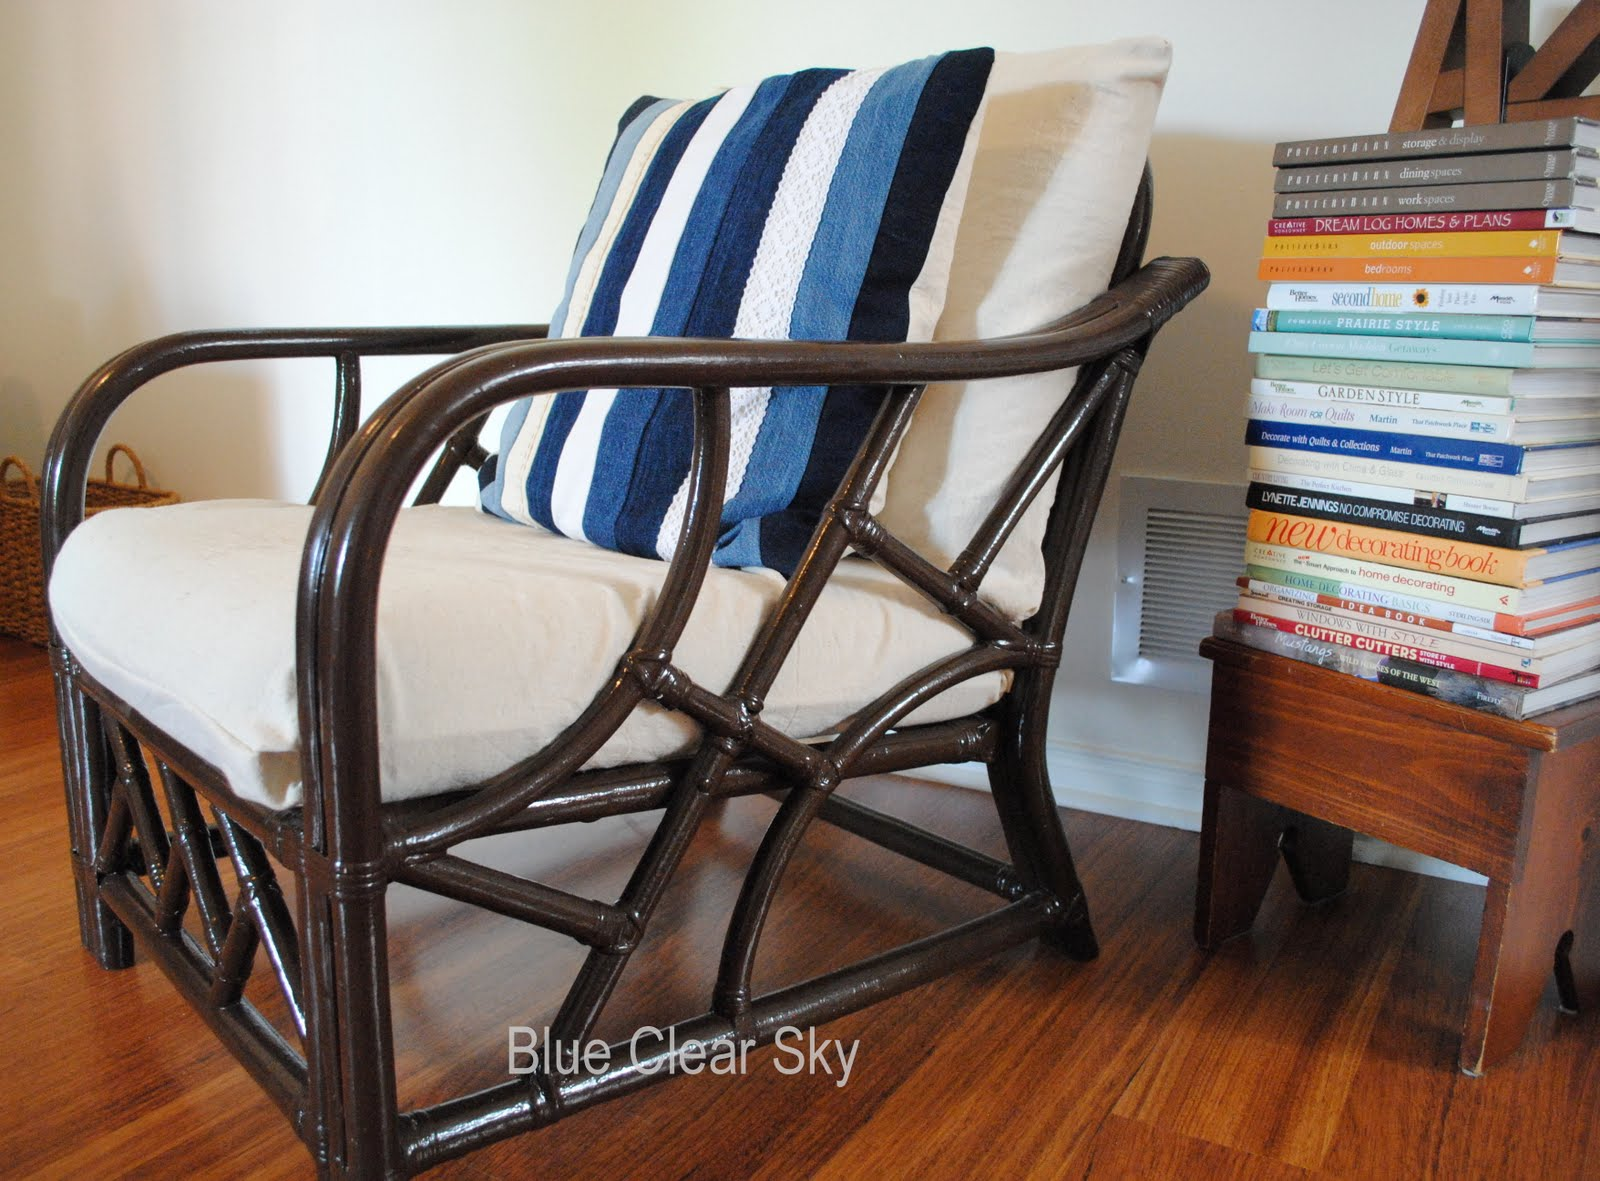 The cushions on this yard sale chair got new drop cloth slipcovers. I title=